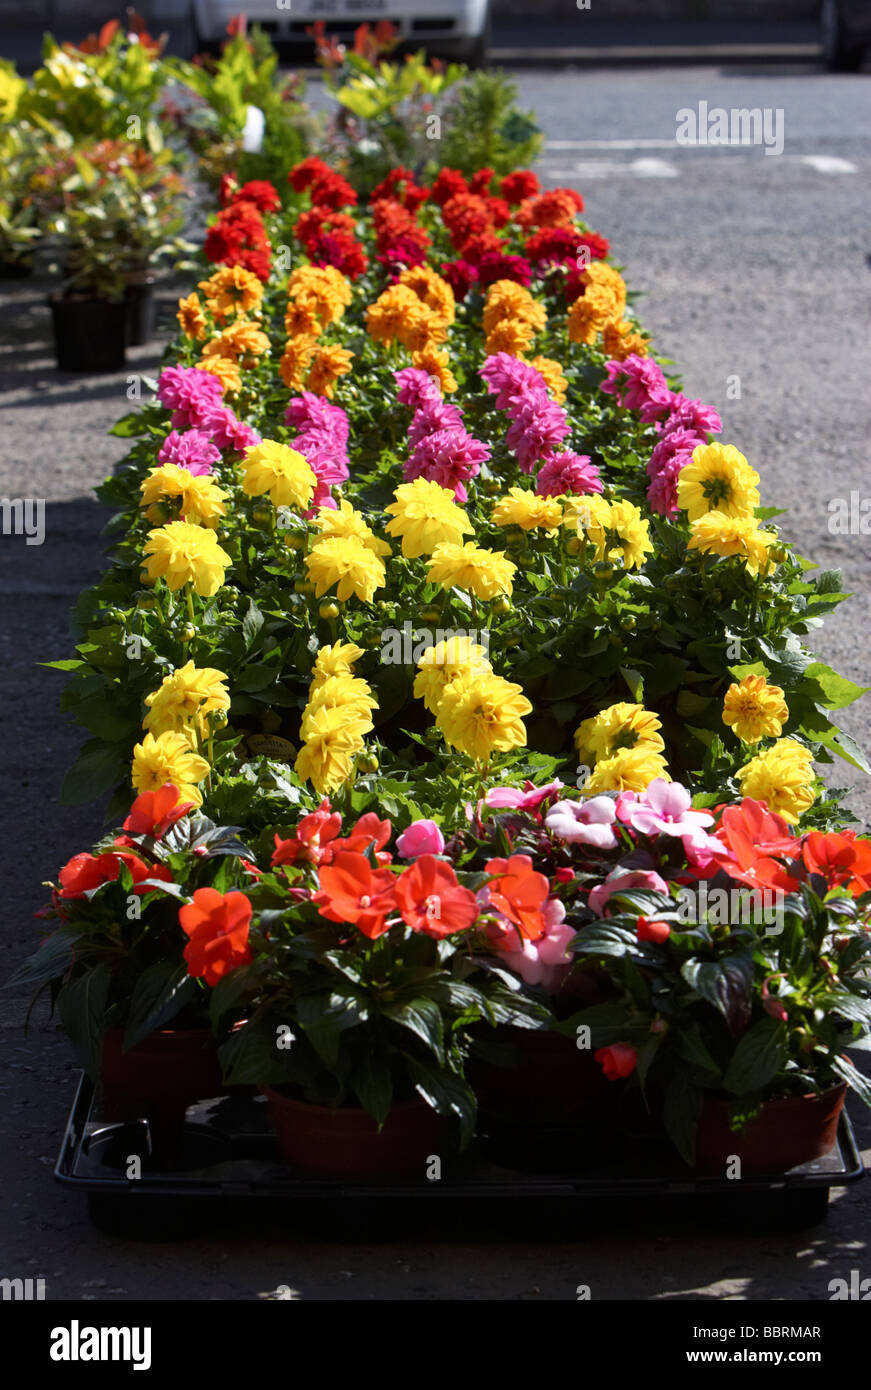 Garden Flowers For Sale At An Outdoor Market In The Uk Stock Photo